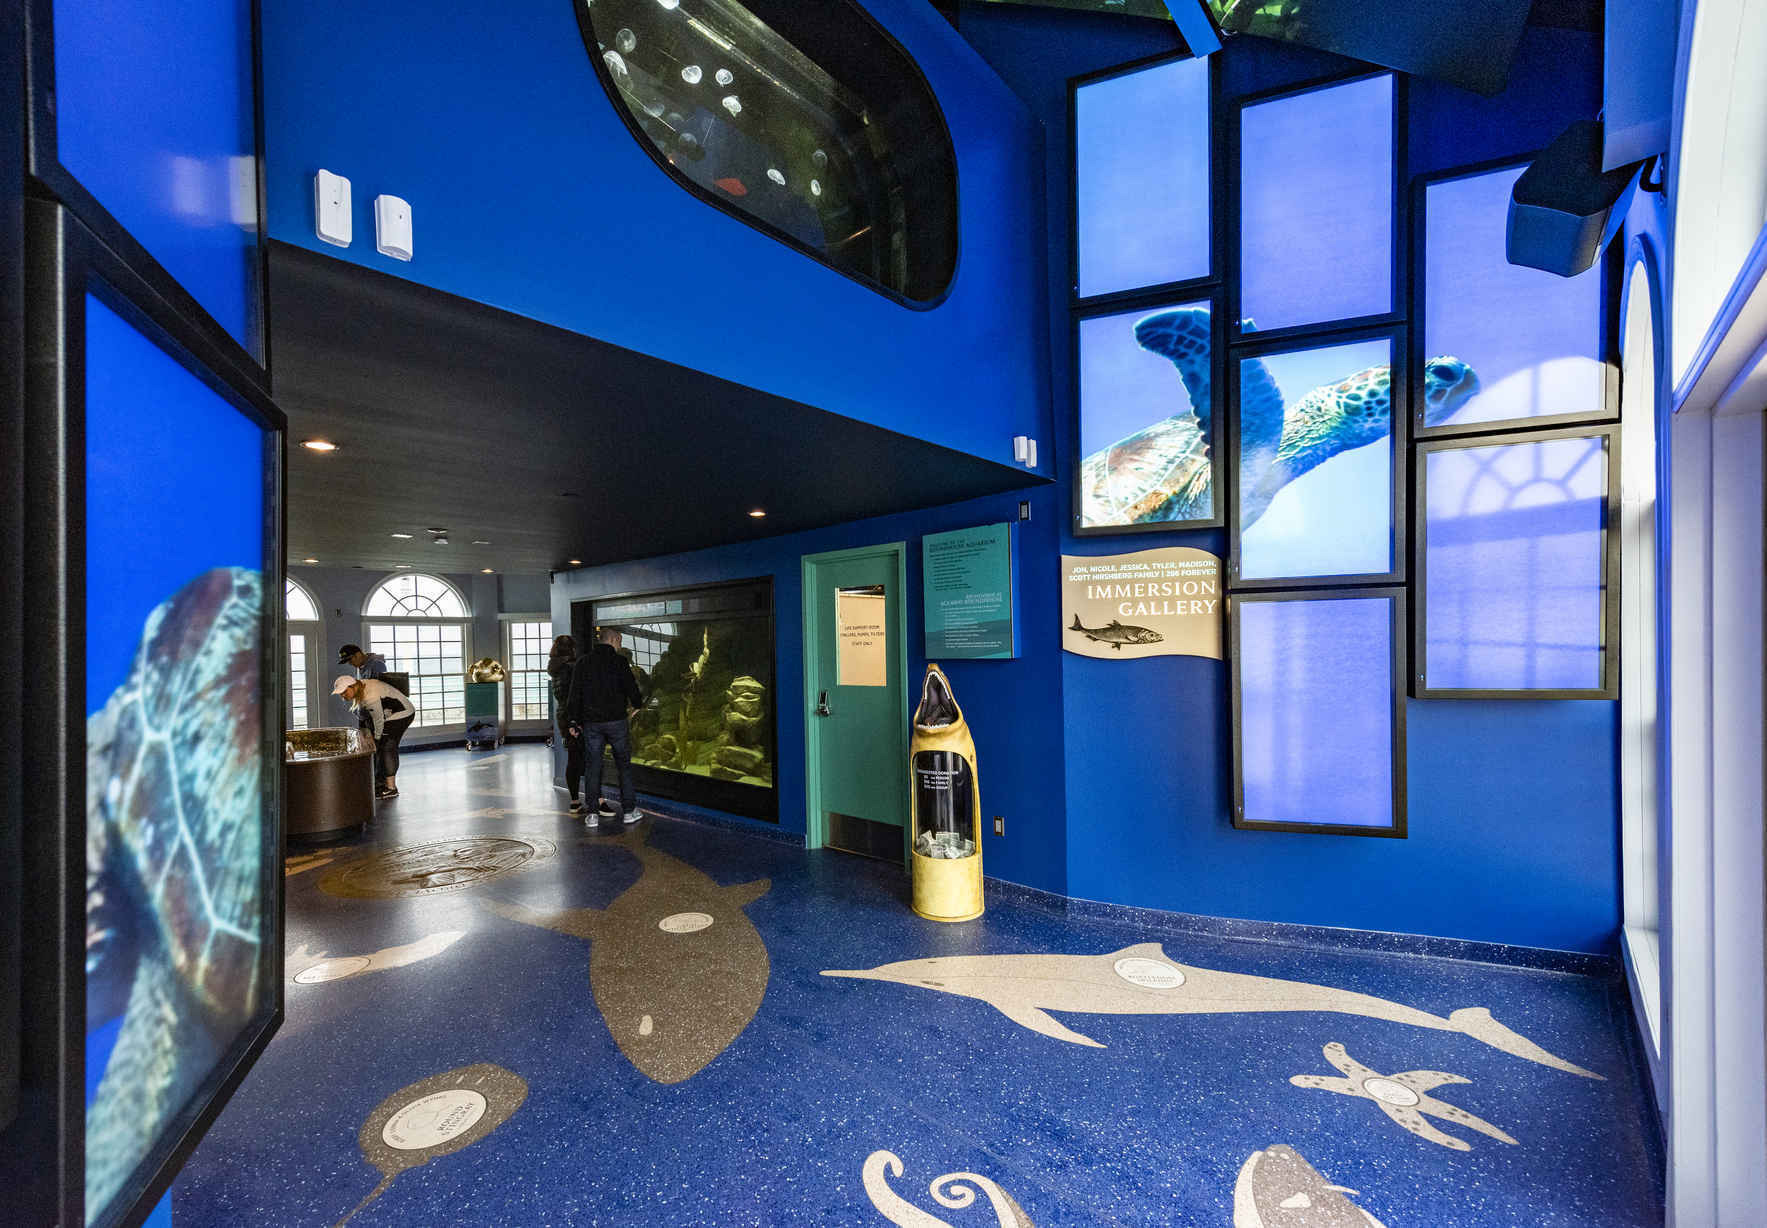 July 5 - Reserve your free entry to the Roundhouse Aquarium image